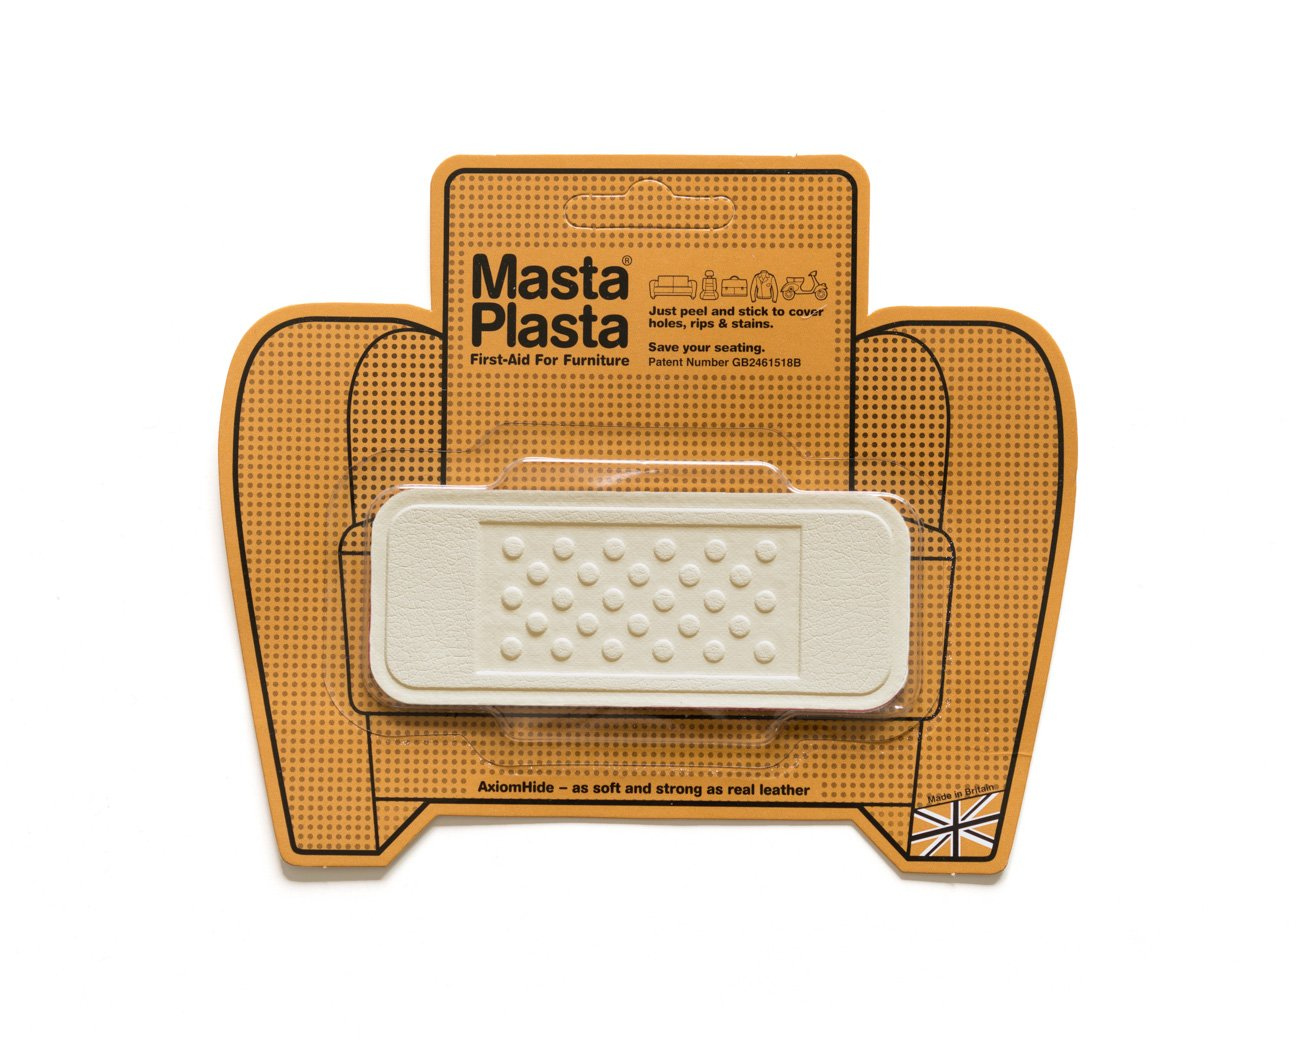 Ivory MastaPlasta Self-Adhesive Leather Repair Patches. Choose size/design. First-aid for sofas, car seats, handbags, jackets etc (IVORY SMALL CIRCLE 5cmx5cm) MastaPlasta Ltd MPSCIRCLEW